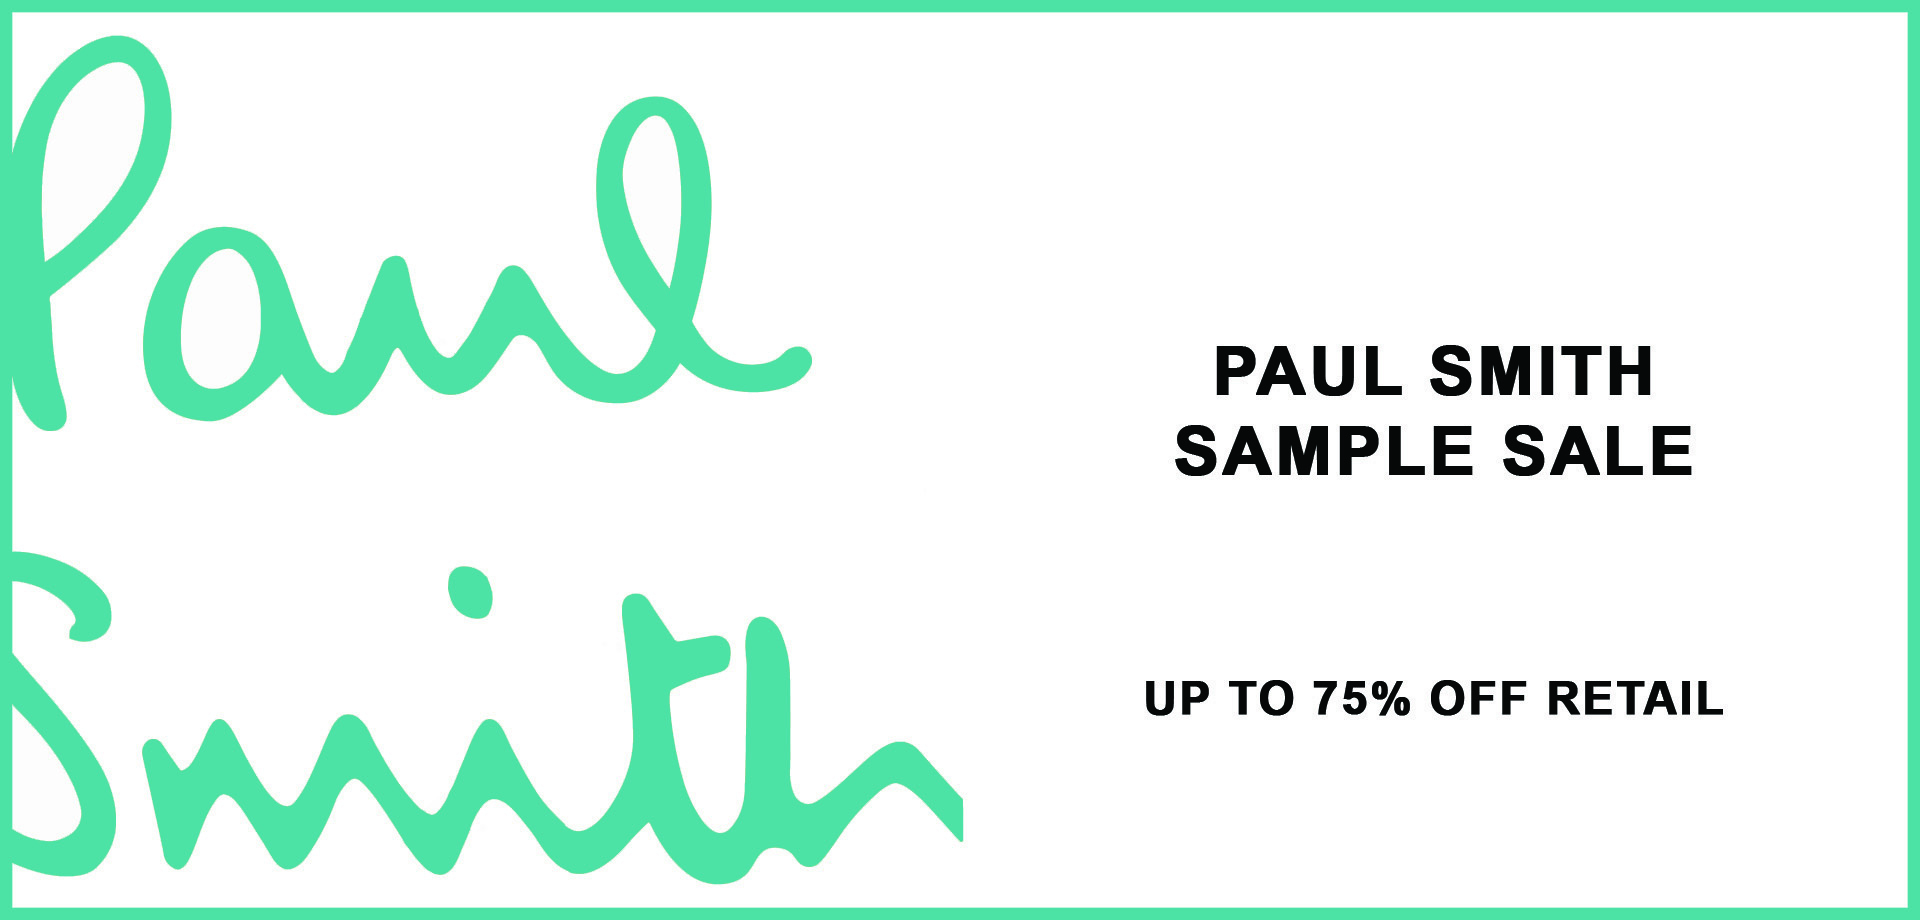 BANNER_PAUL-SMITH-Sample-Sale_260NY_May19.jpg